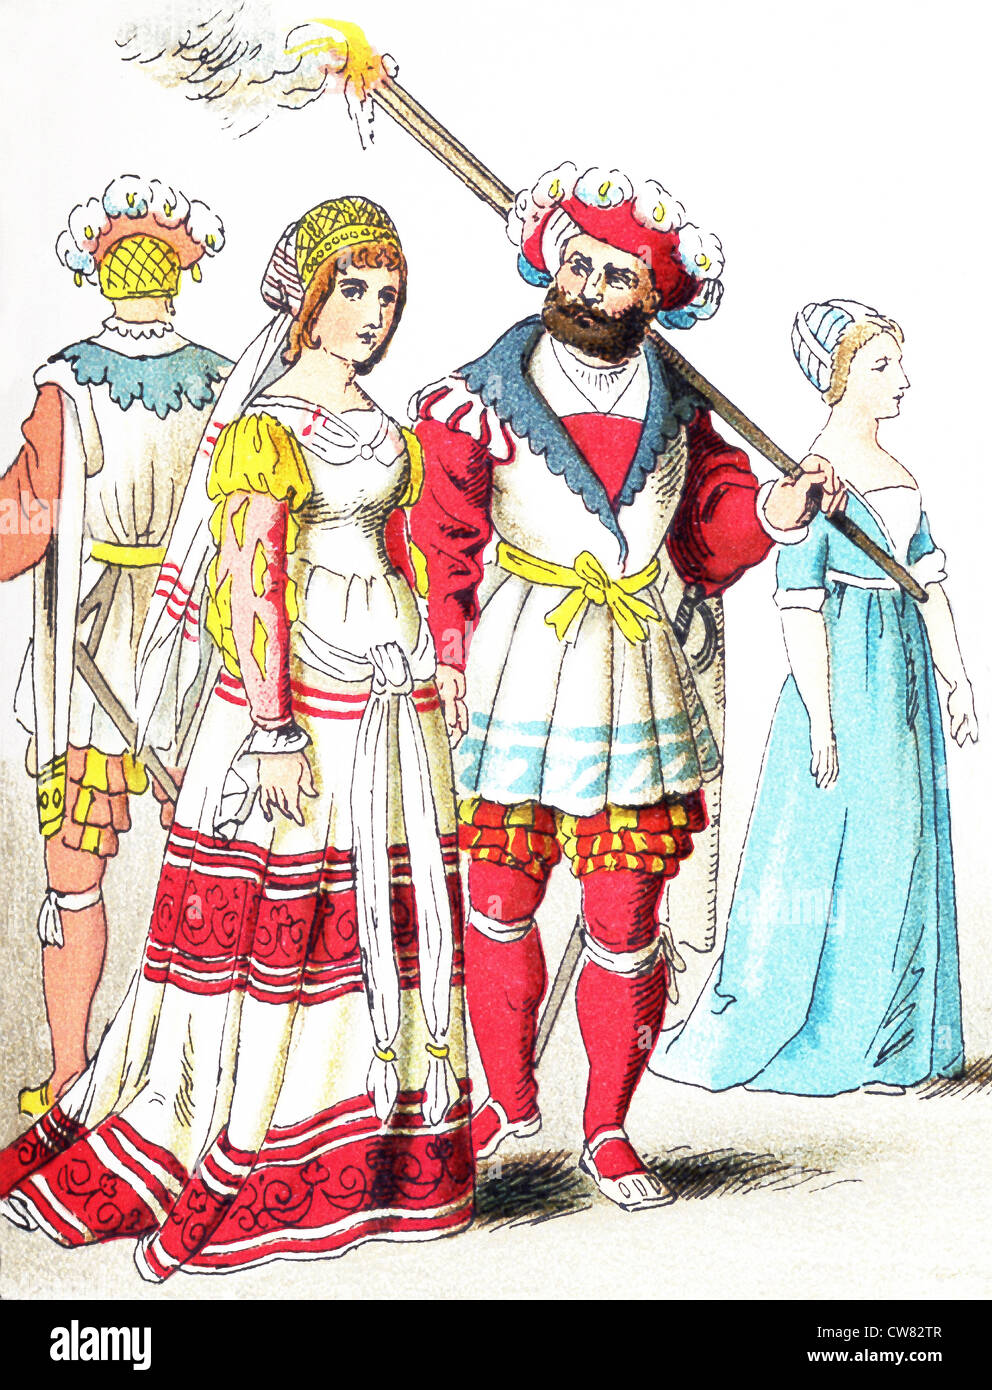 The figures represent English people between 1500 and 1550. They are: three people of high rank and a citizen. - Stock Image